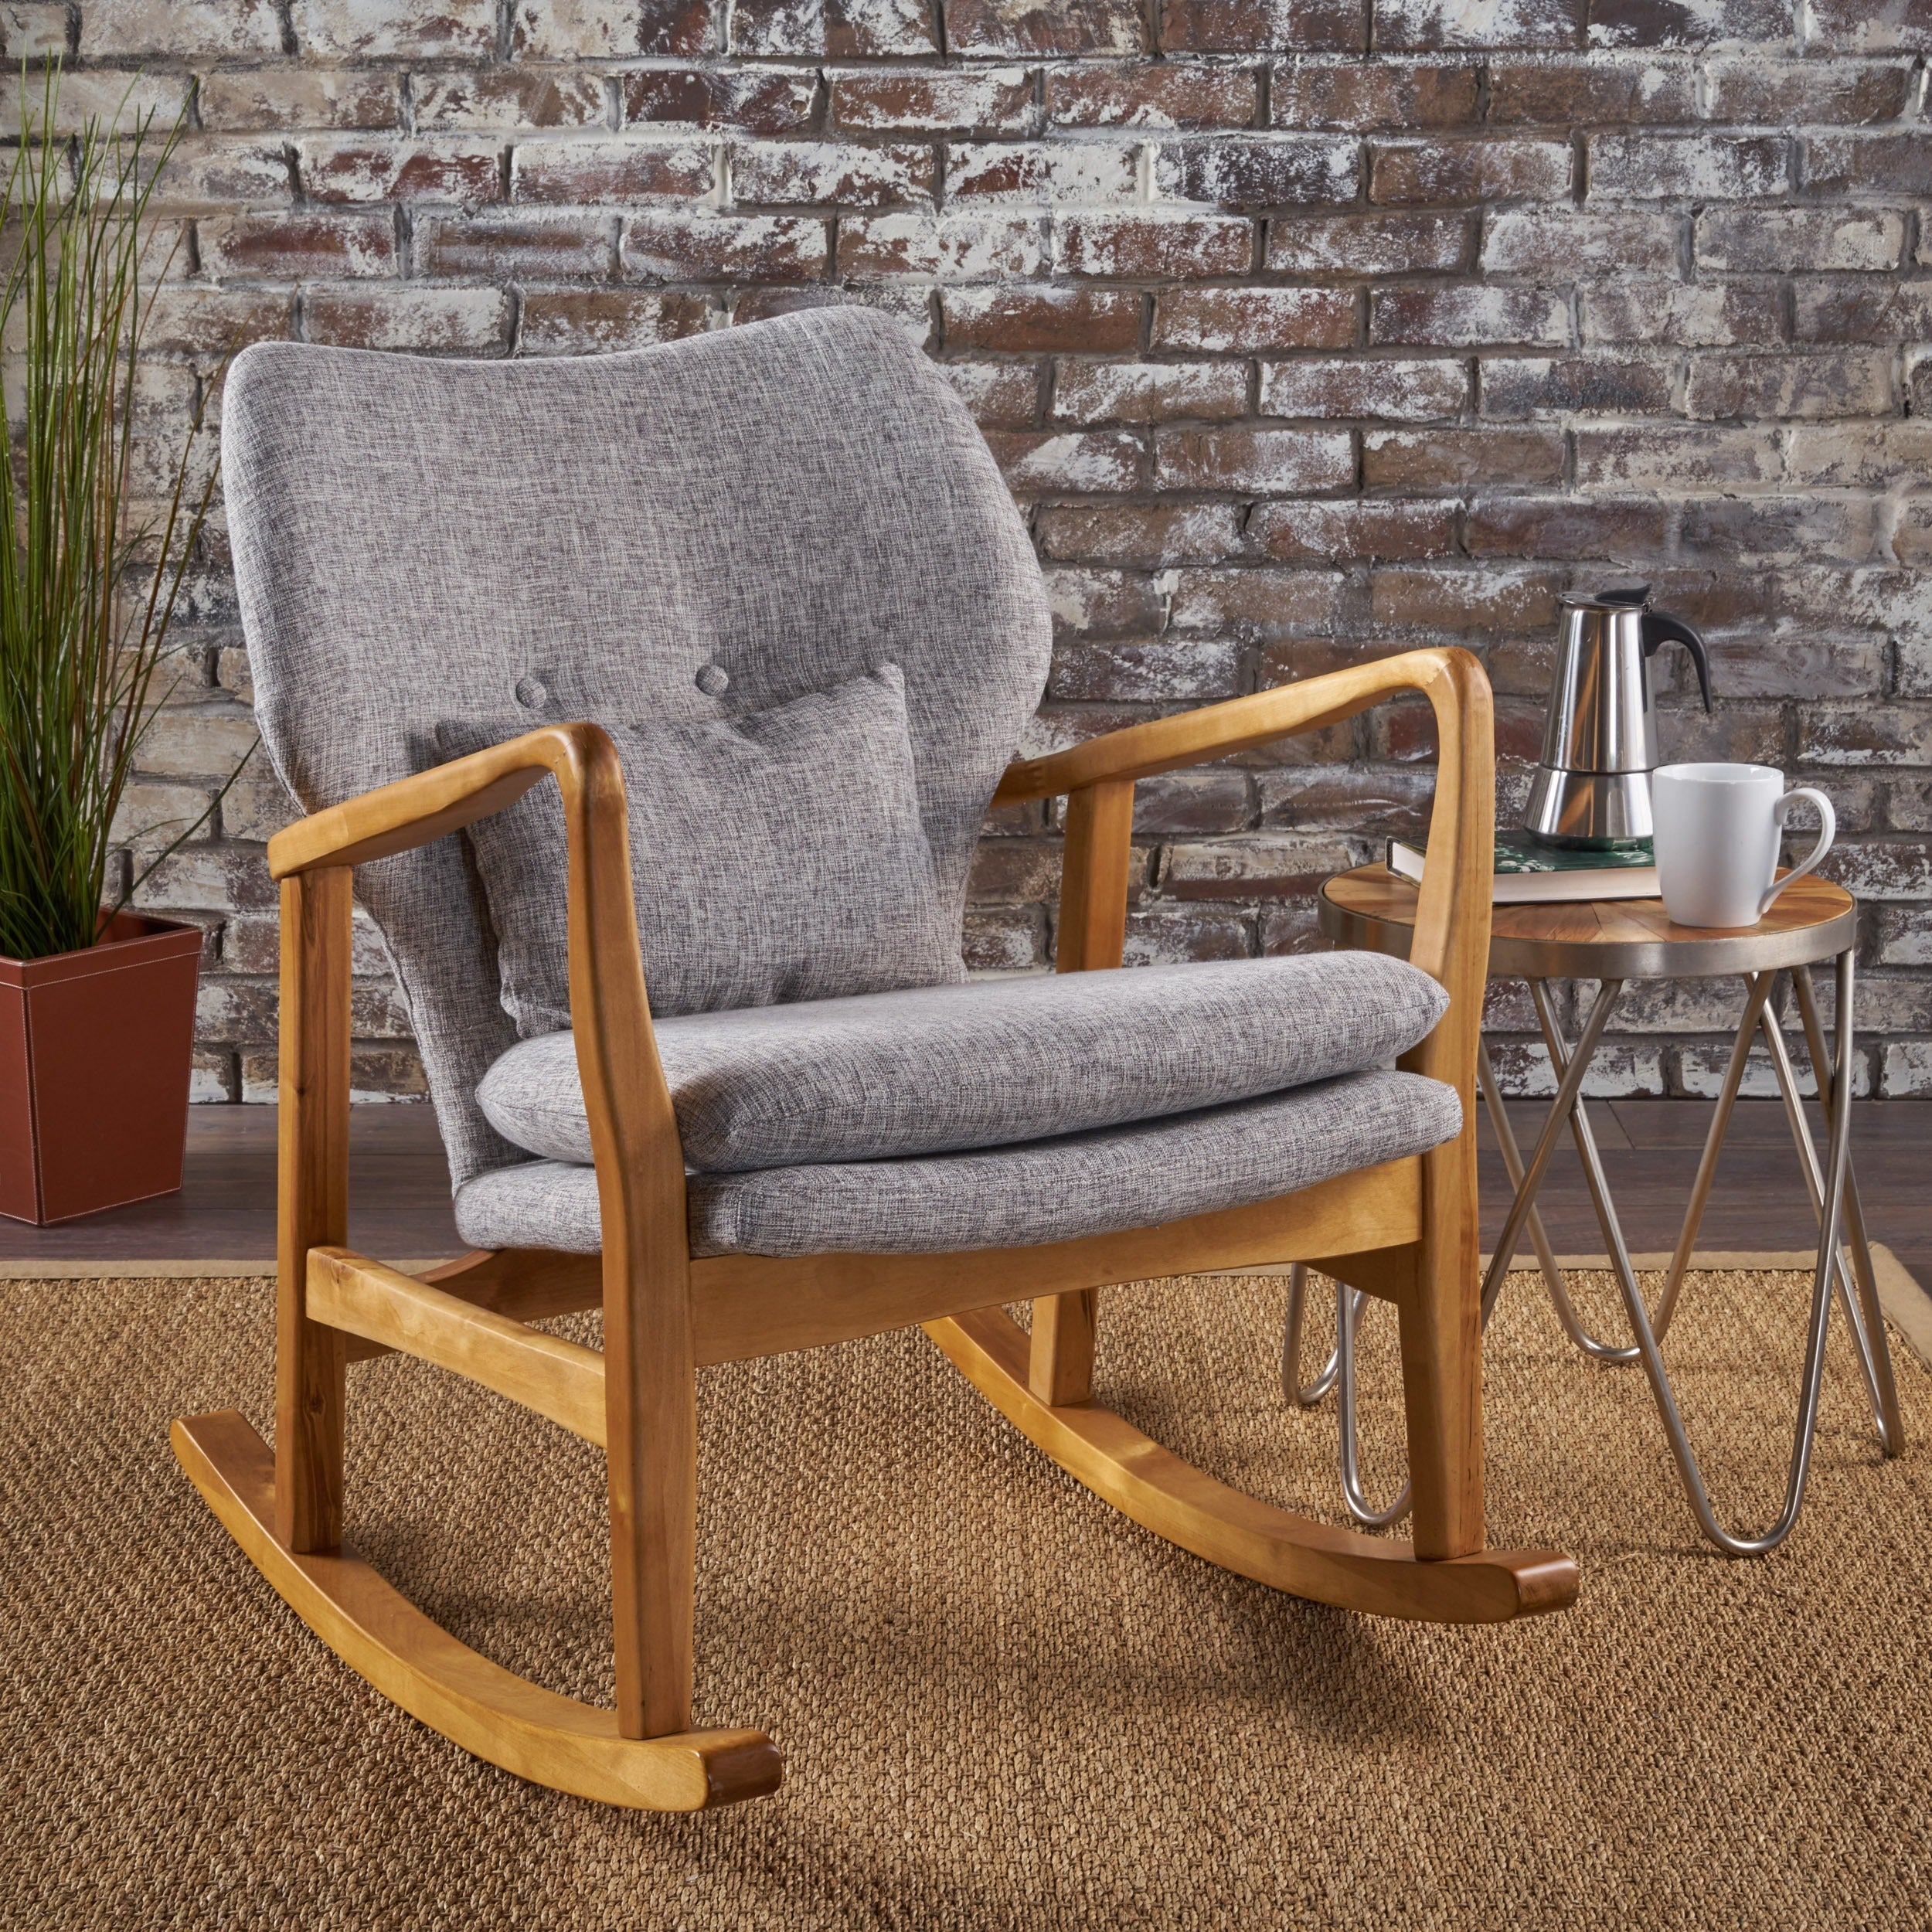 Rocking Chairs, Modern & Contemporary Living Room Chairs Within Faux Leather Upholstered Wooden Rocking Chairs With Looped Arms, Brown And Red (#13 of 20)